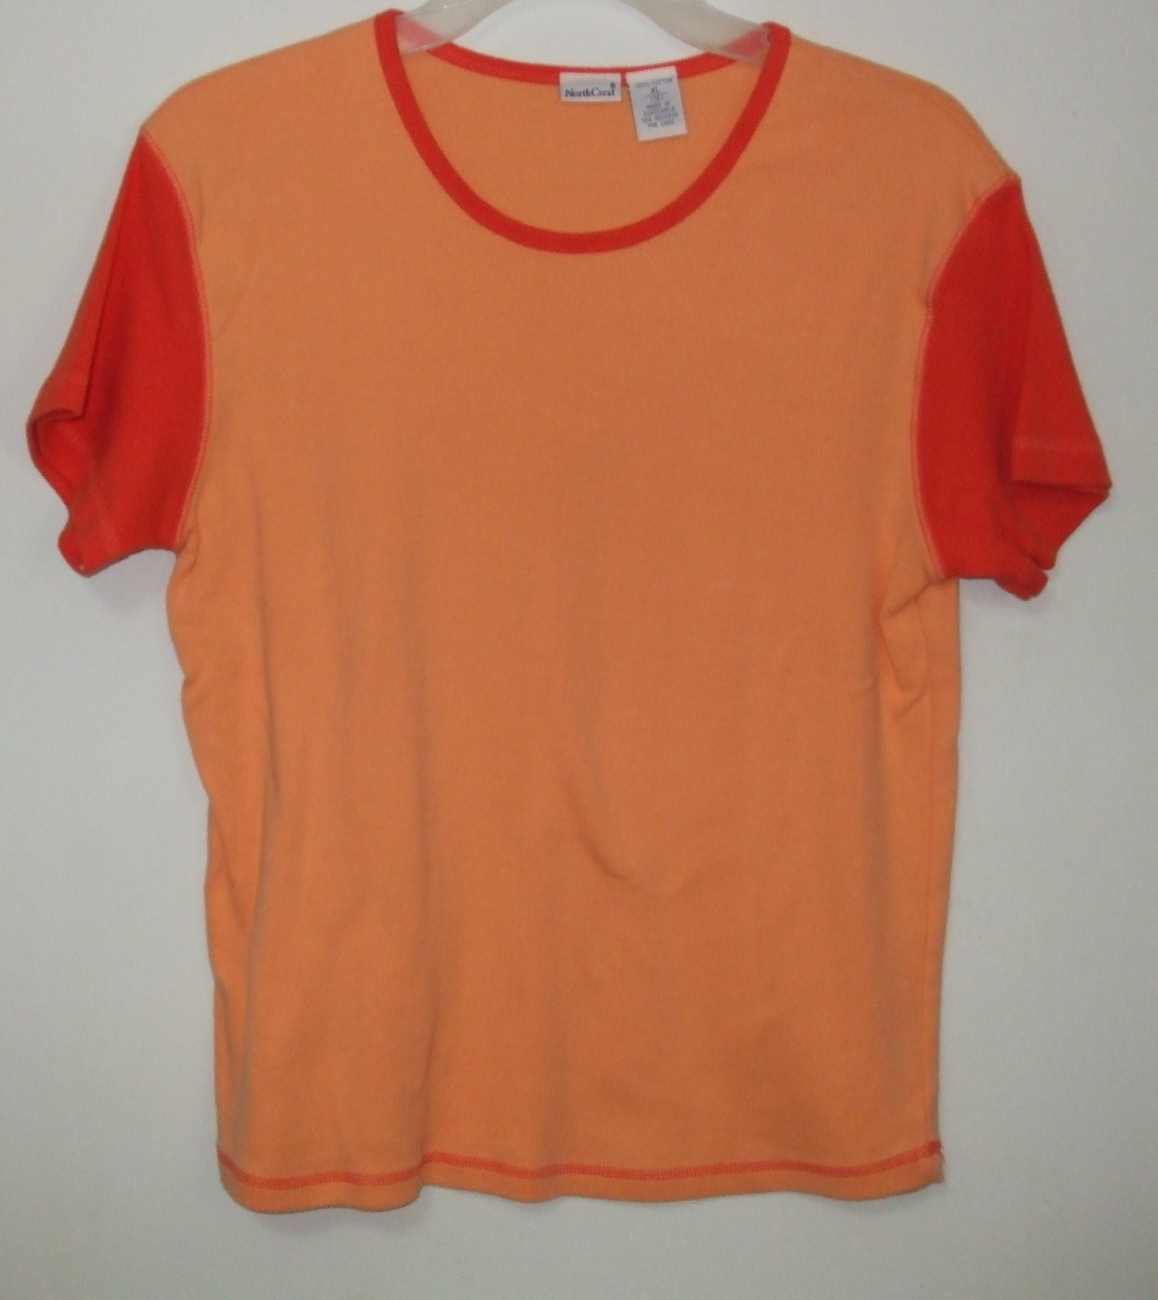 Womens North Crest Orange Short Sleeve Top Size XL